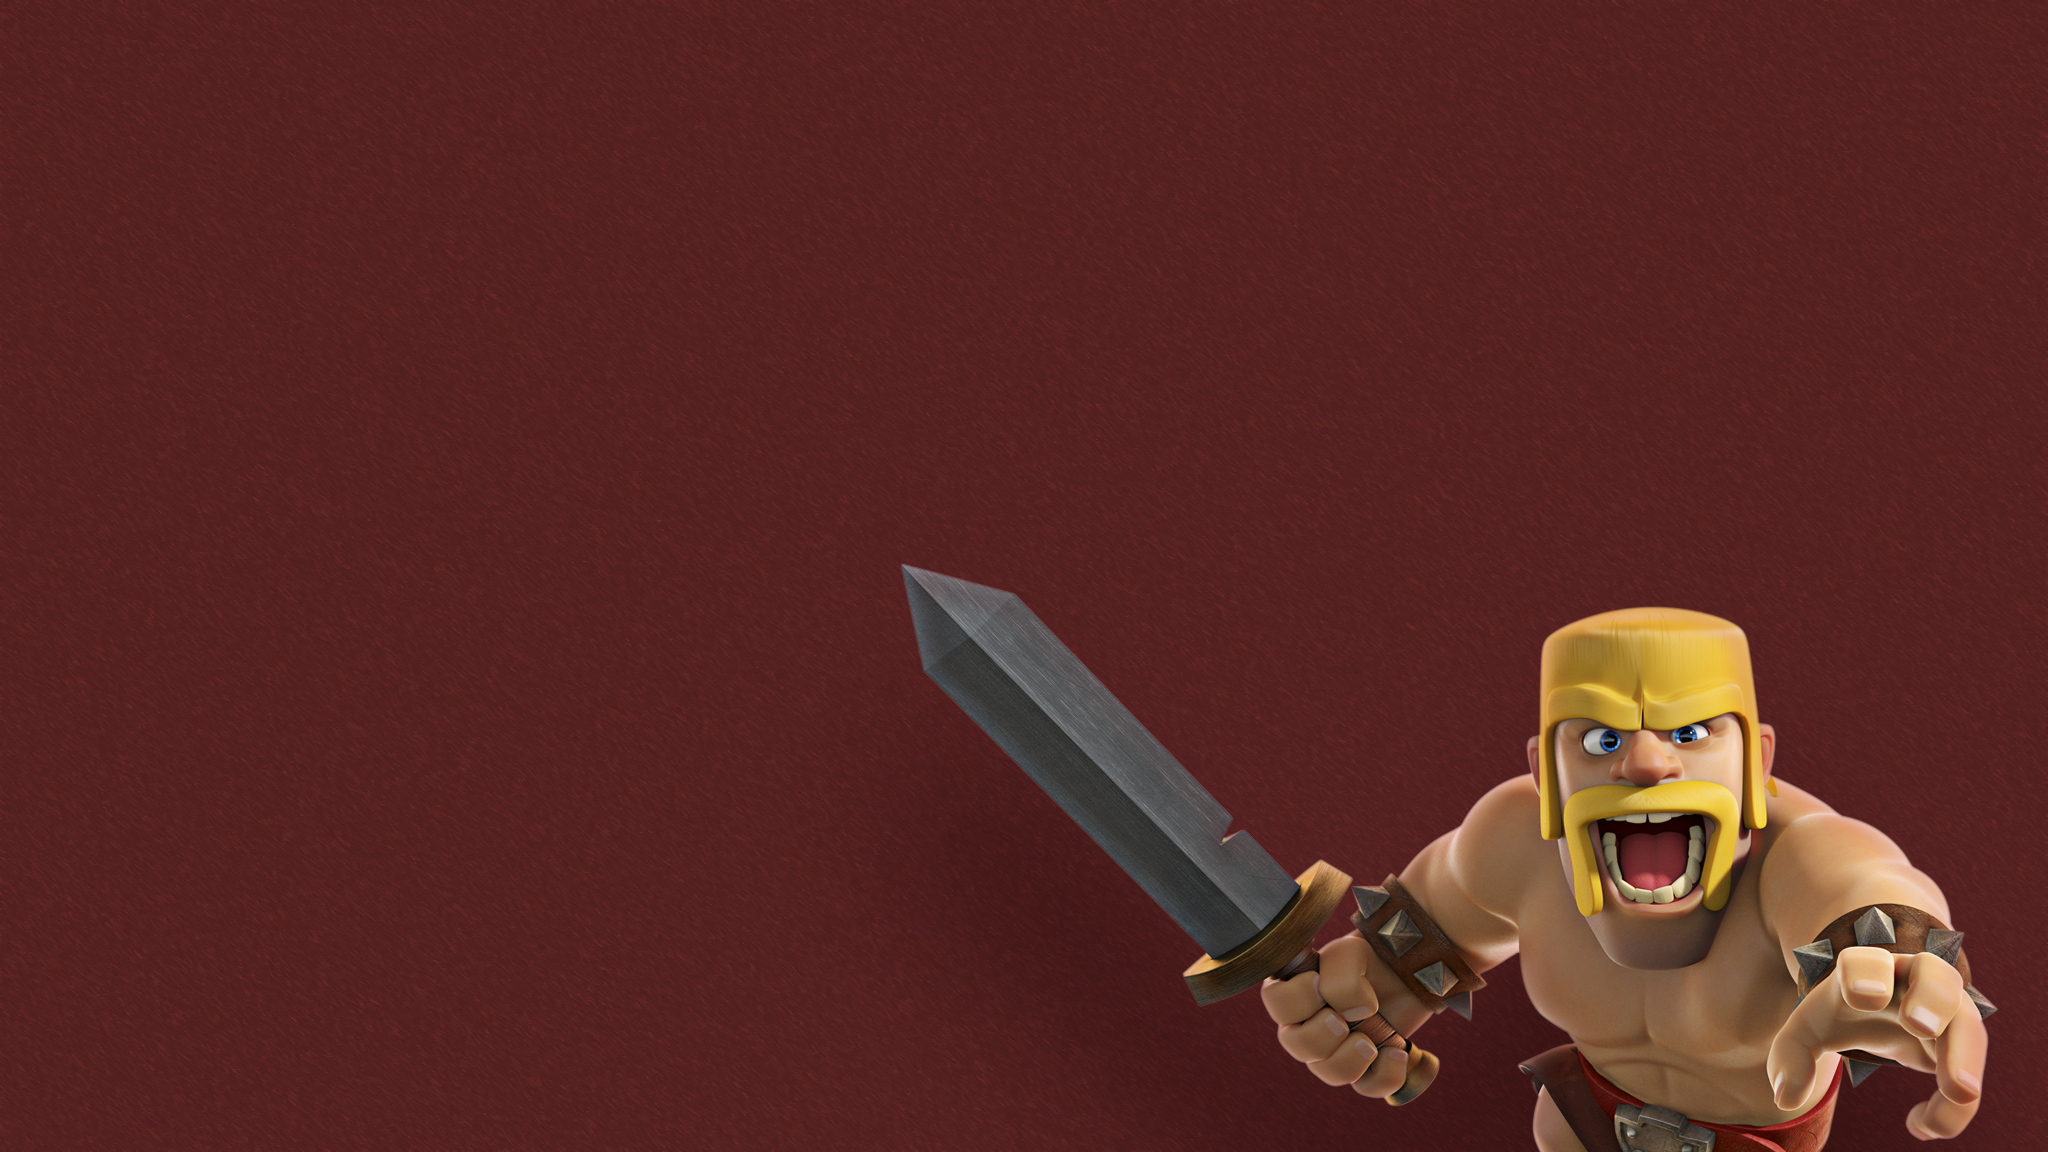 Barbarian Clash Of Clans Hd Hd Games 4k Wallpapers